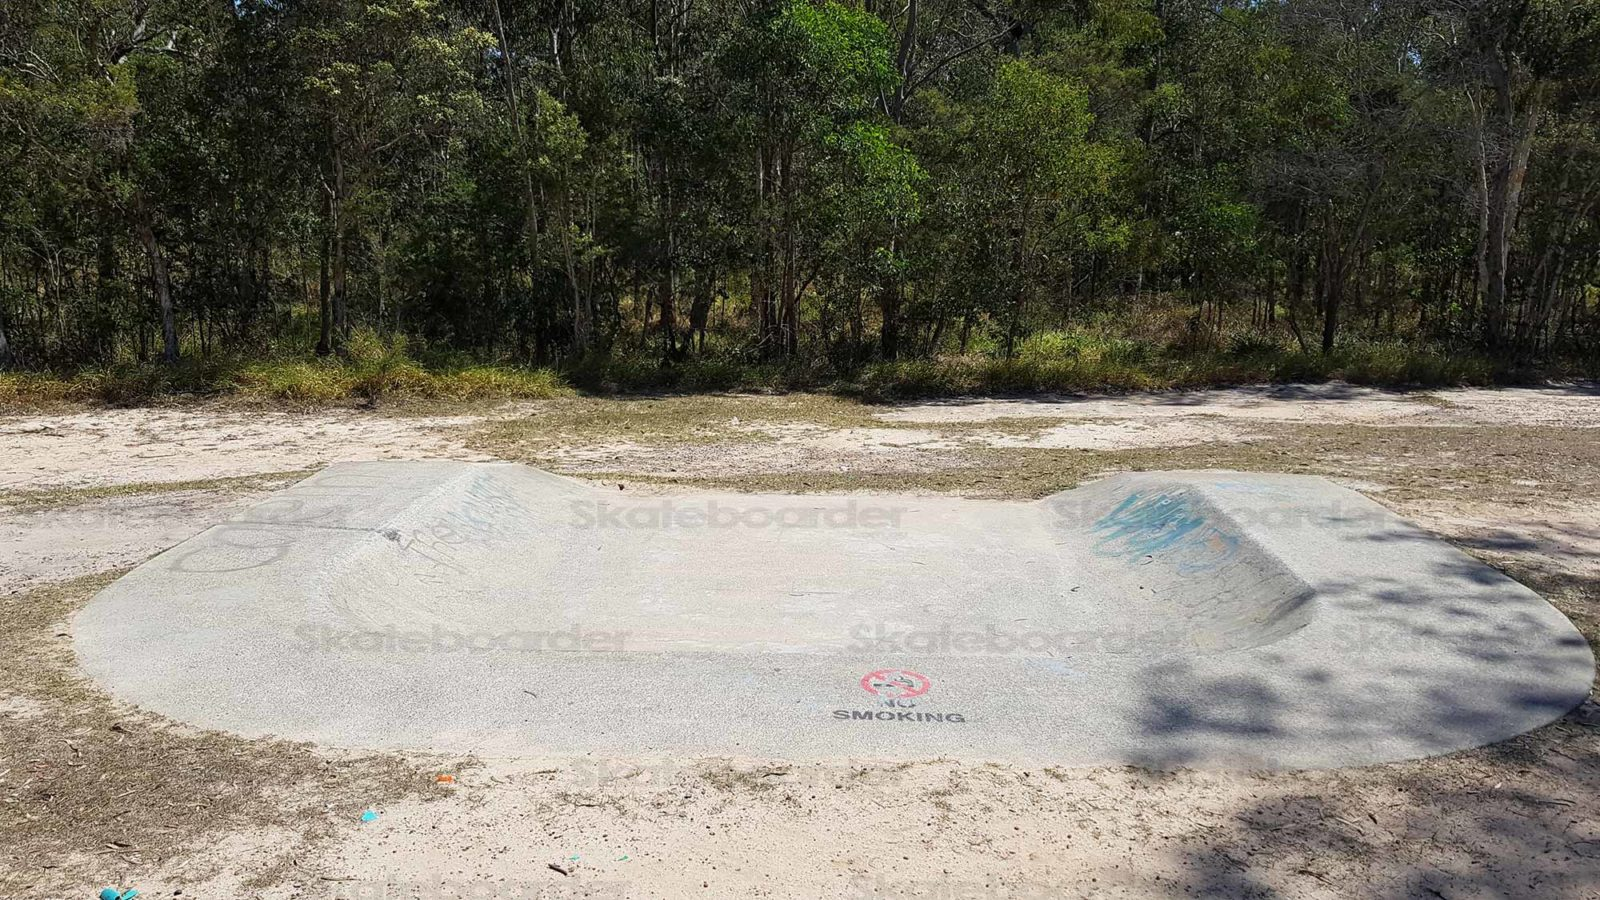 Overview of Crestmead Skate Bowl